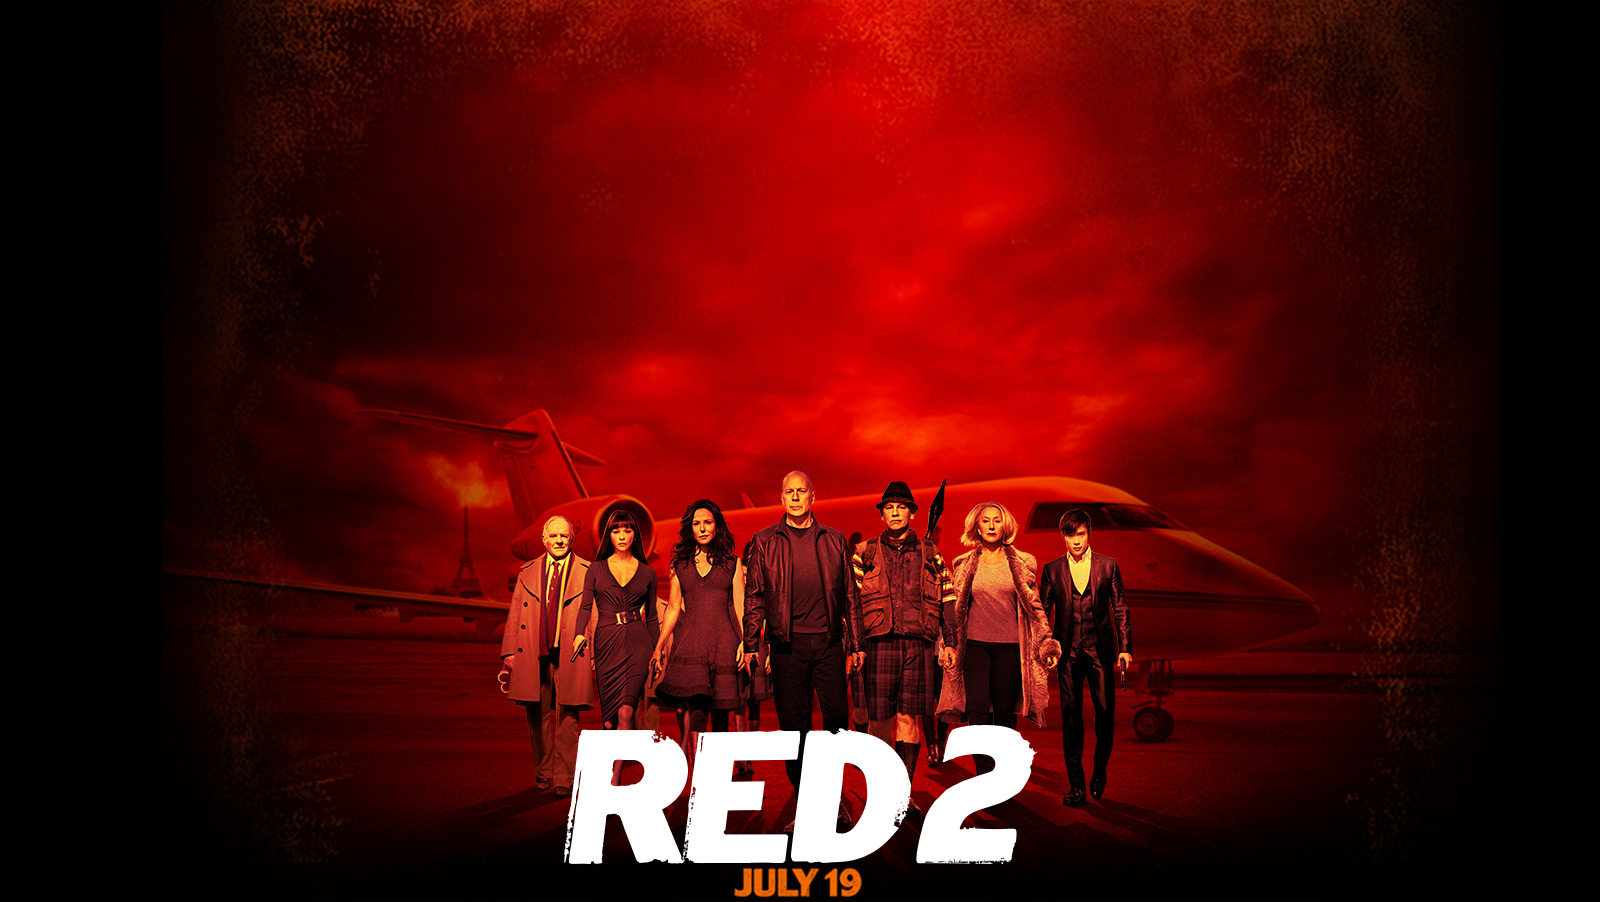 Red 2 Movie Background Wallpaper   Red 2 Movie Wallpapers Images 1600x902